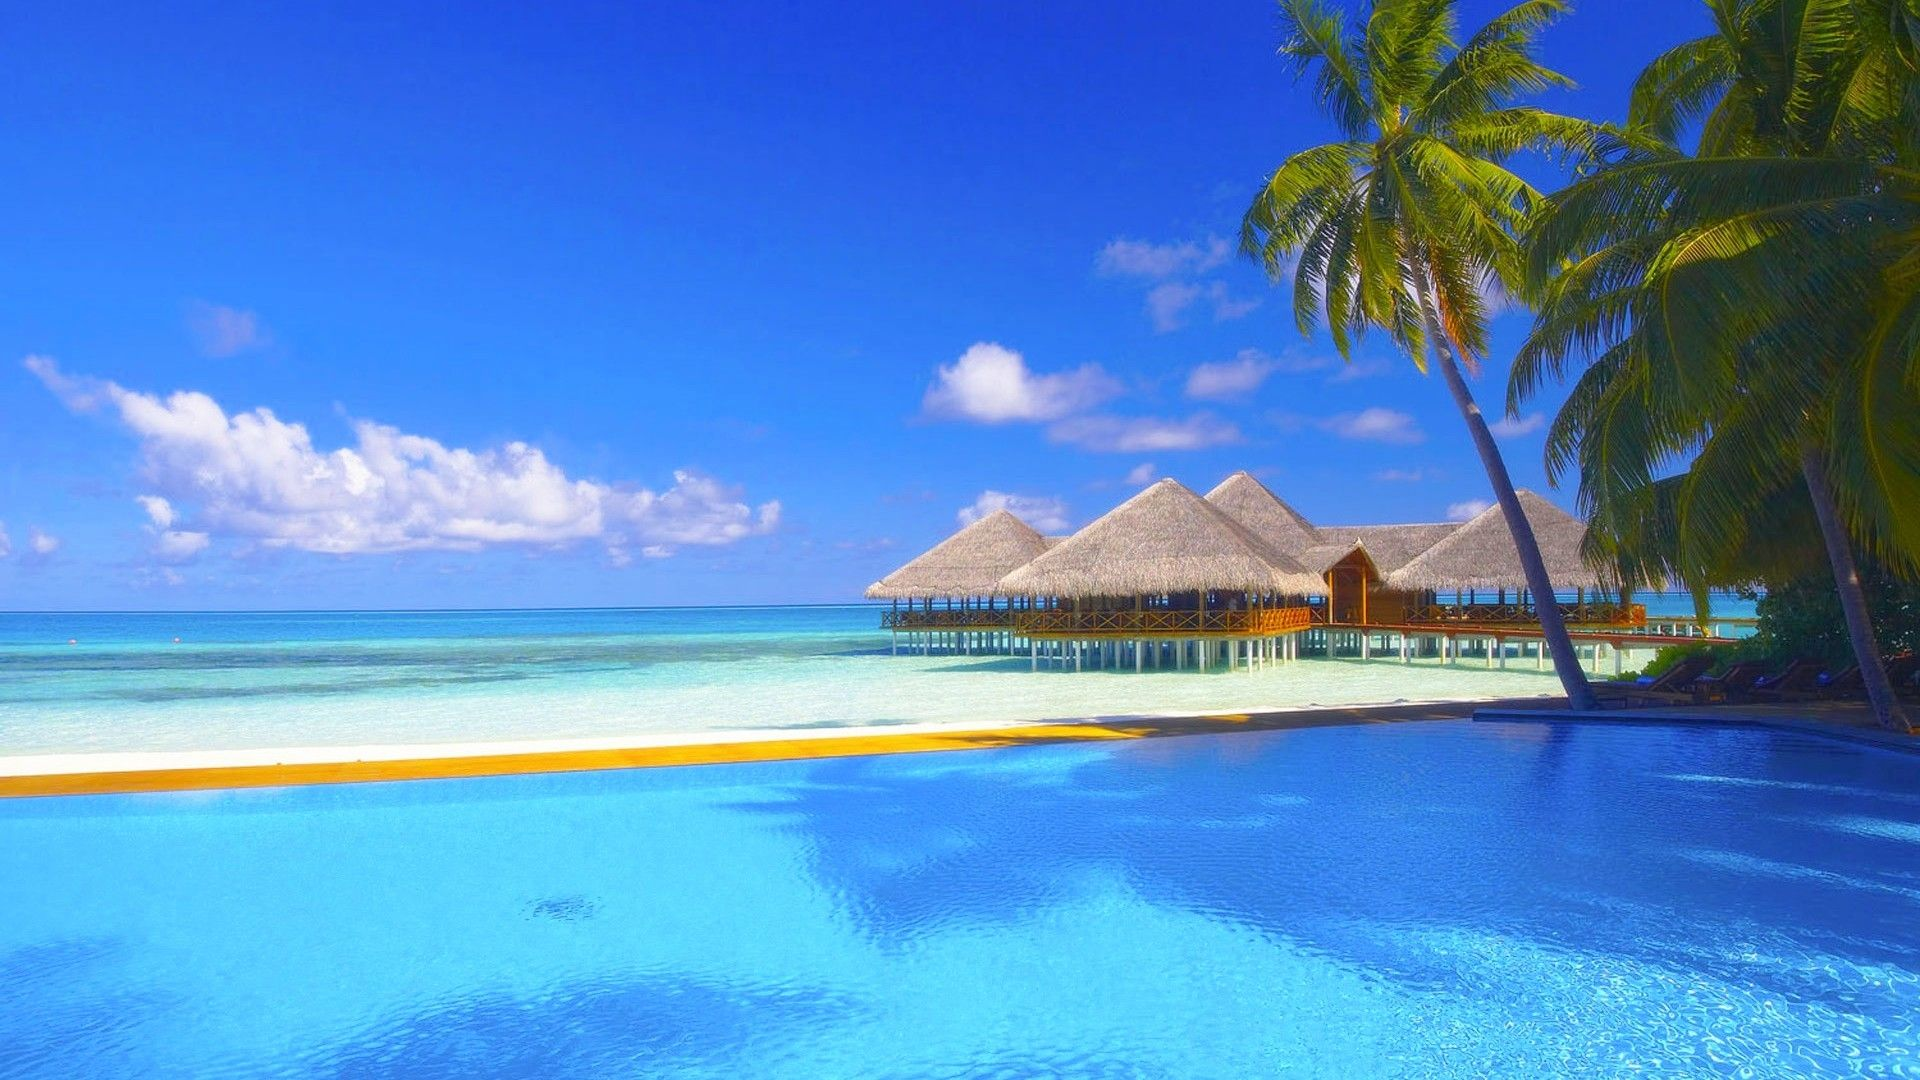 Tropical Paradise Desktop Wallpapers Top Free Tropical Paradise